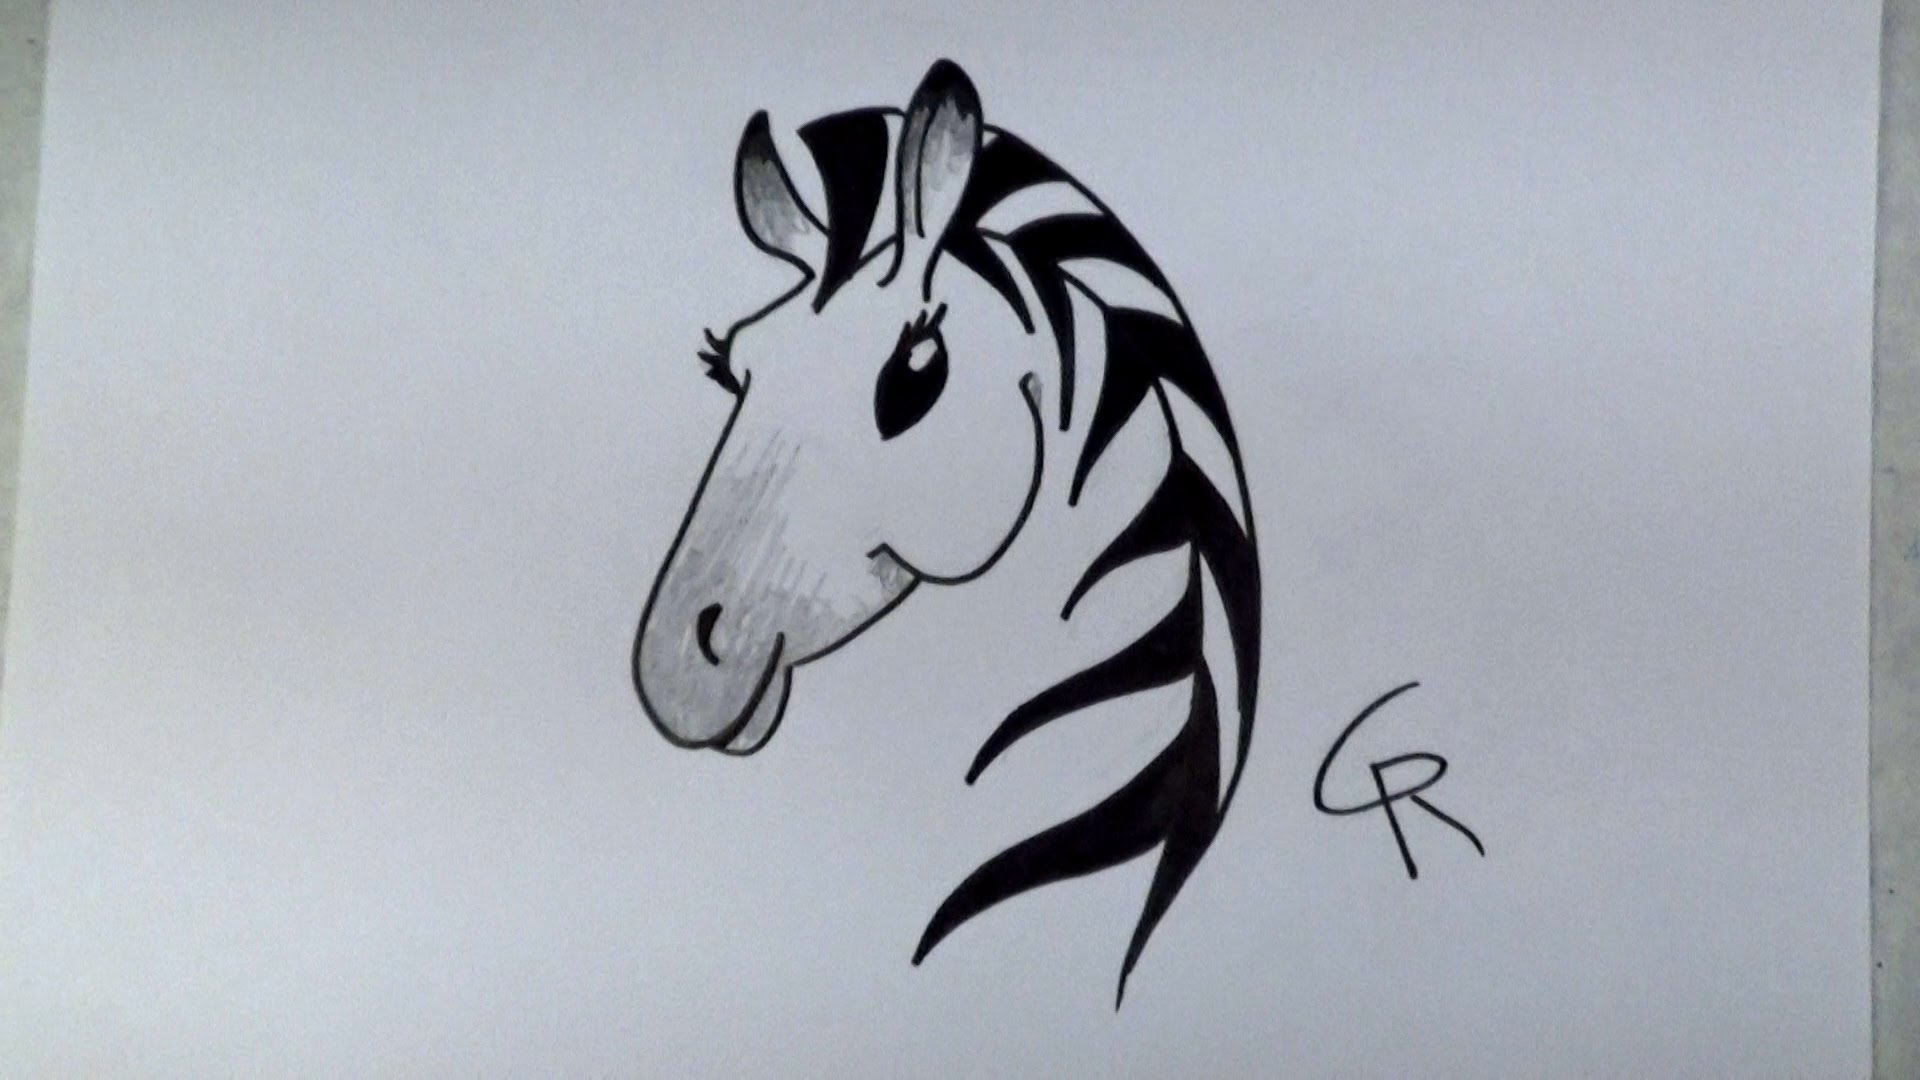 Easy To Print Coloring Pages For Adults : Cute zebra drawing at getdrawings.com free for personal use cute